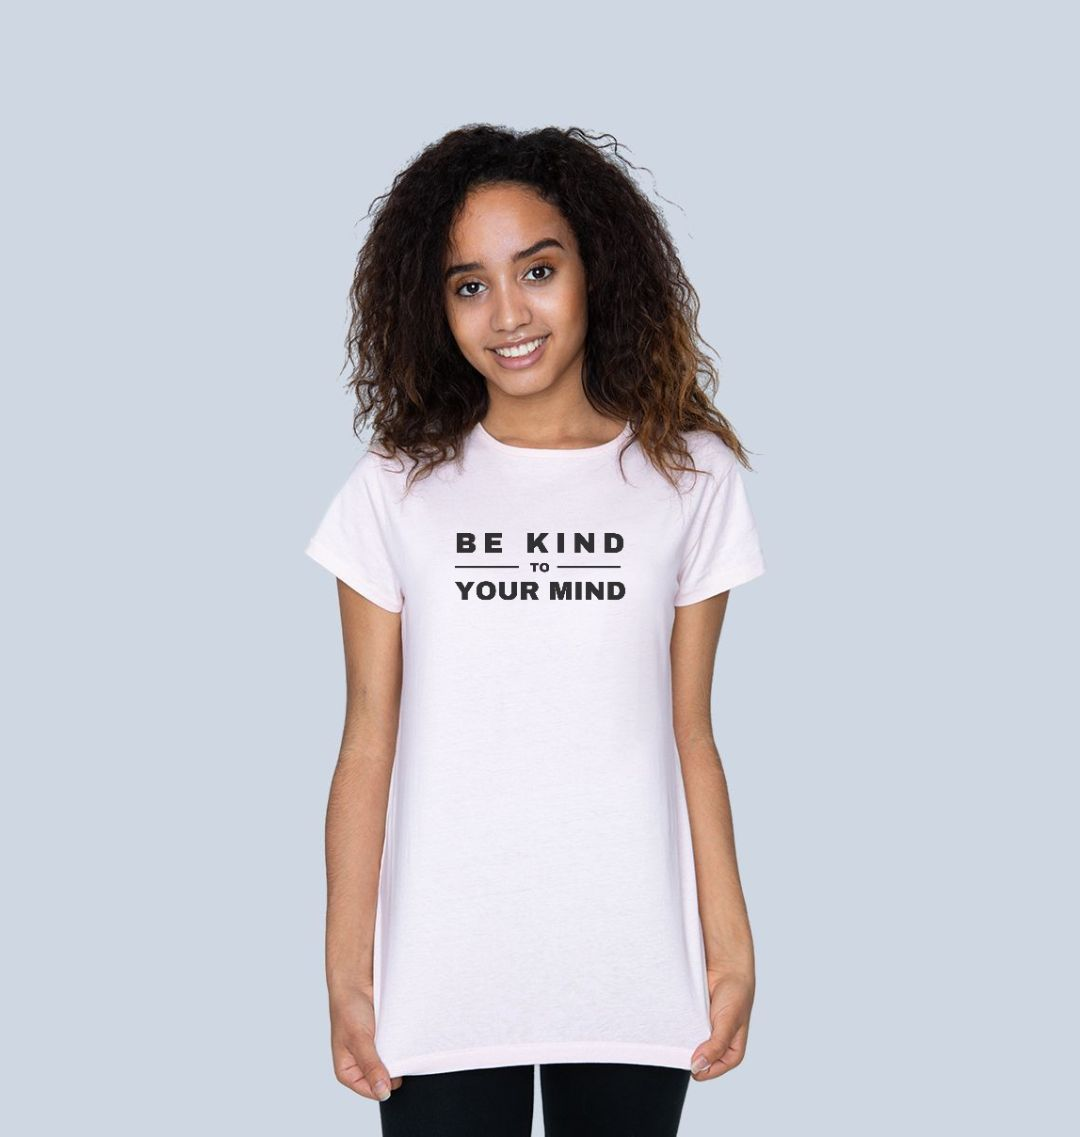 BE KIND TO YOUR MIND Womens Mental Health T-shirt Top pink